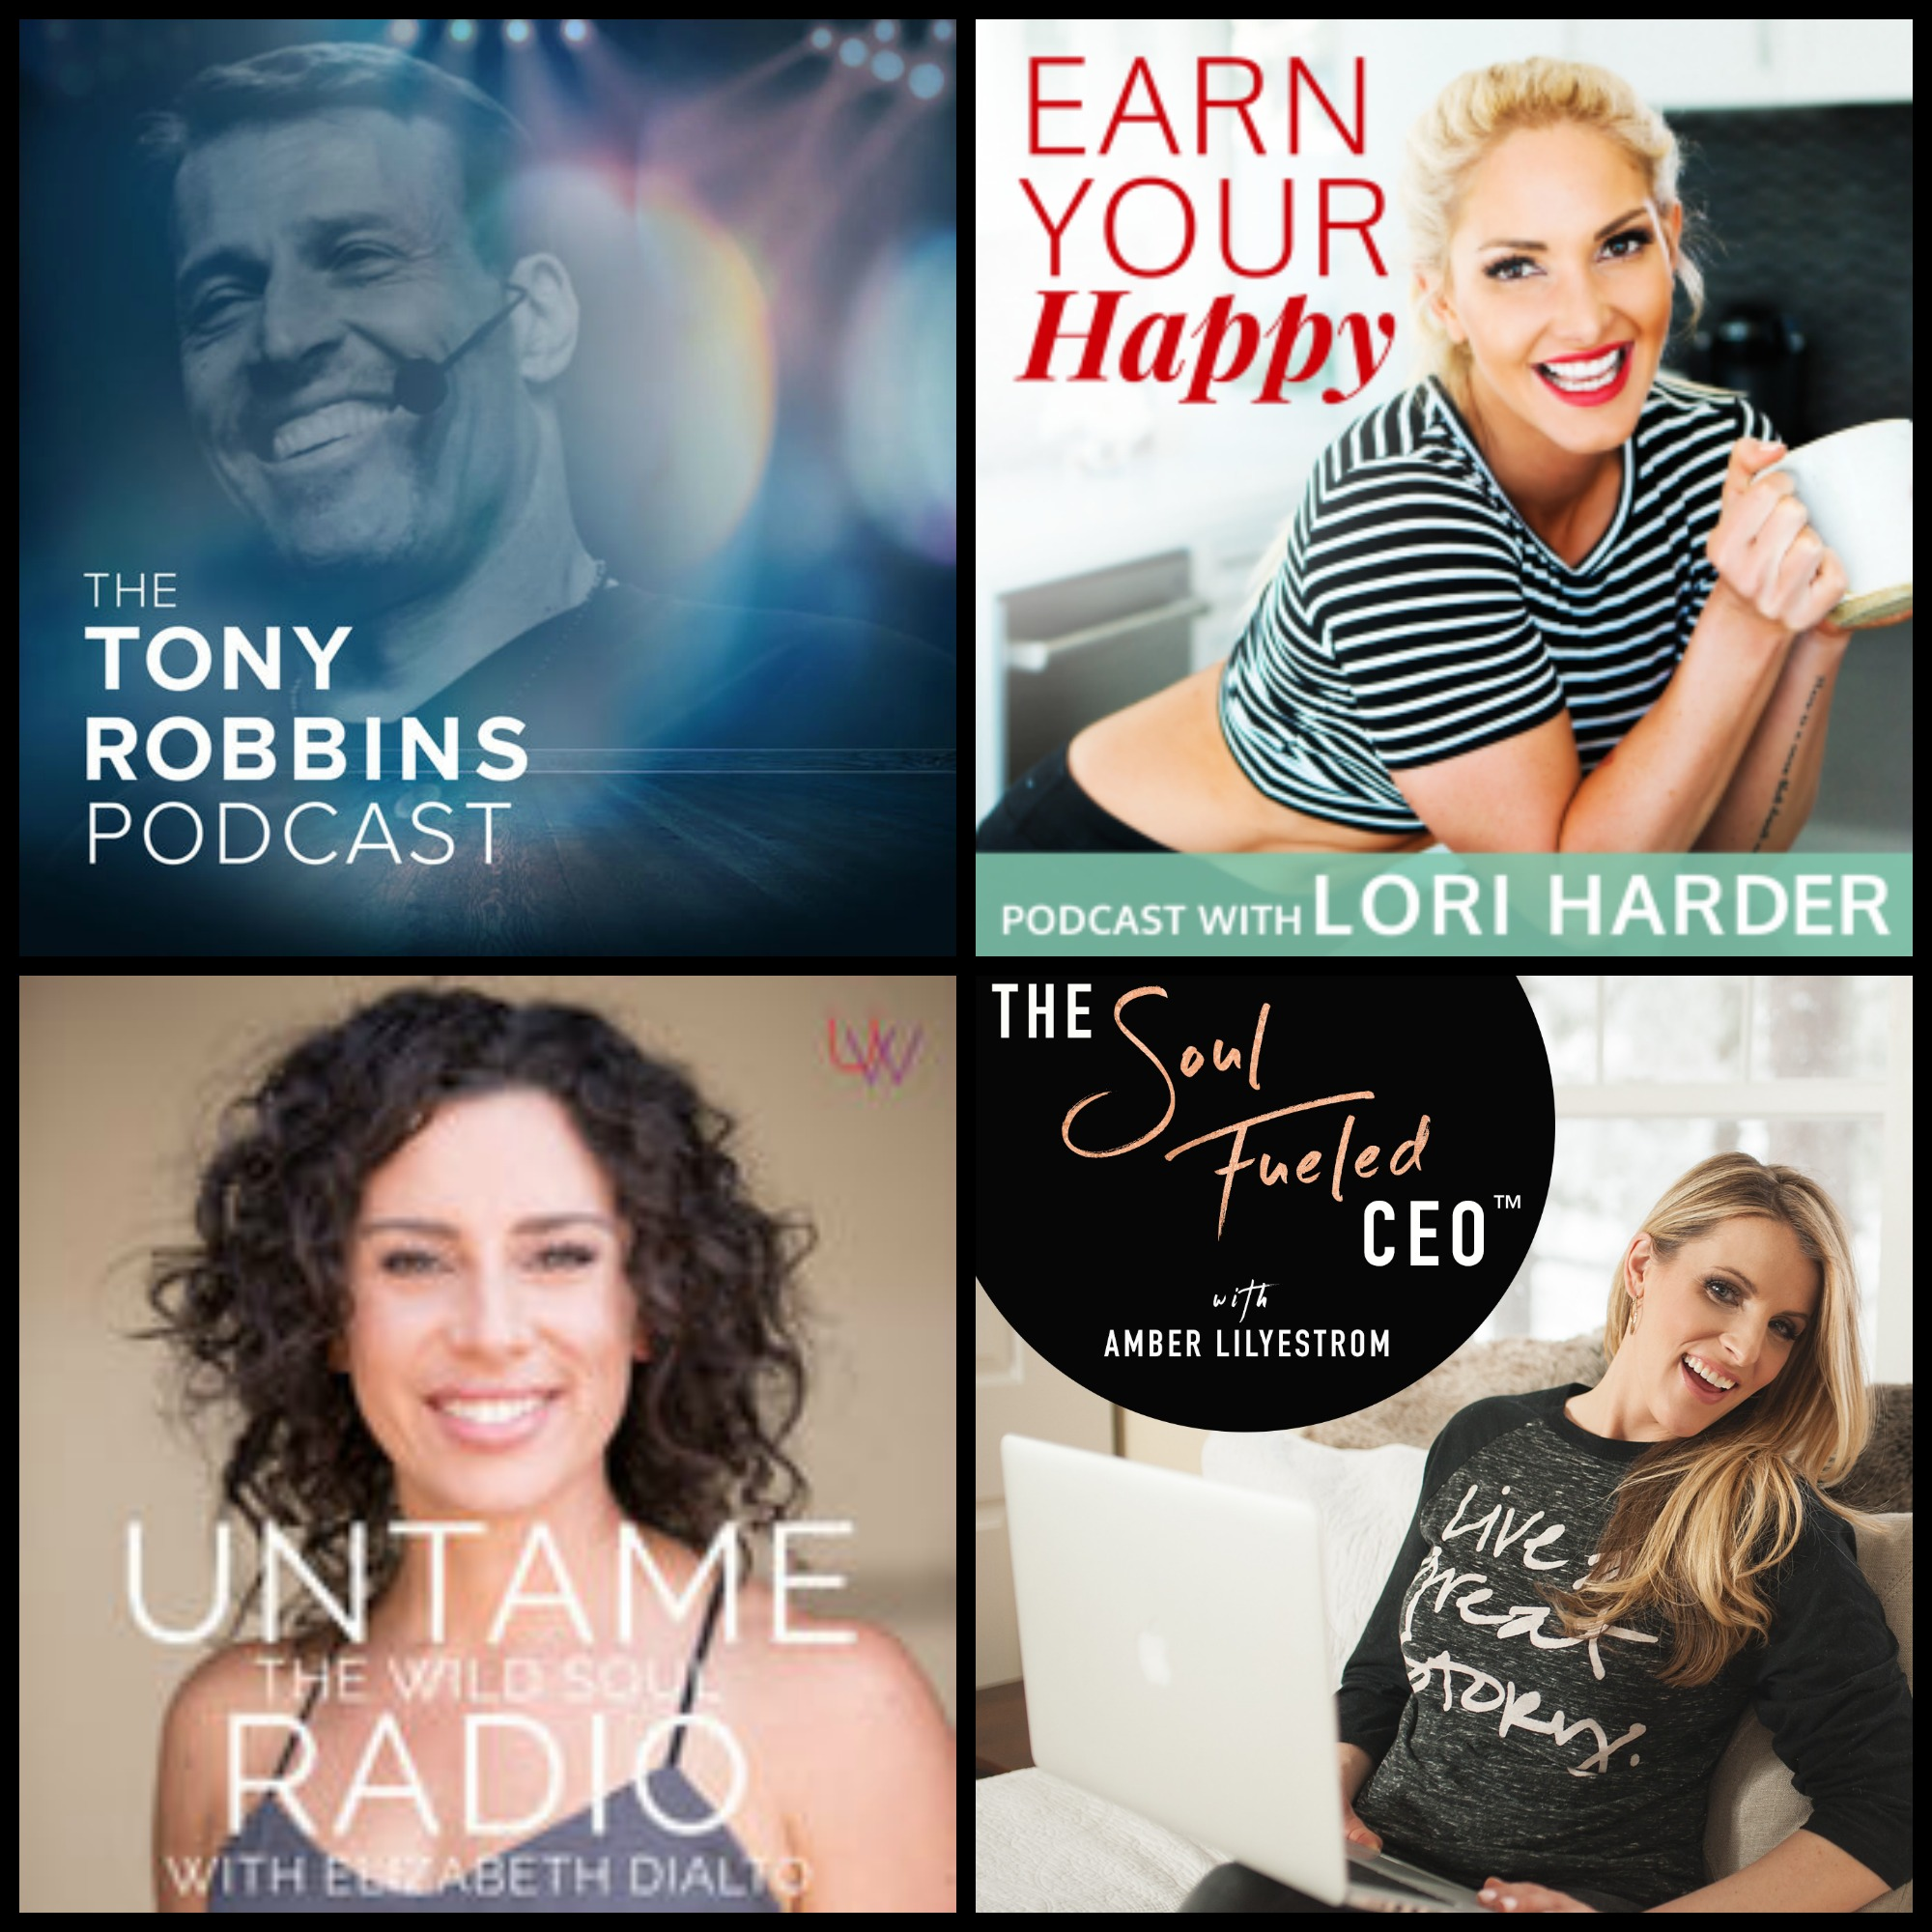 tony-robbins-podcasts-these-are-your-days-earn-your-happy-the-soul-fueled-ceo-untame-the-wild-soul-inspire-motivate-making-memories-5